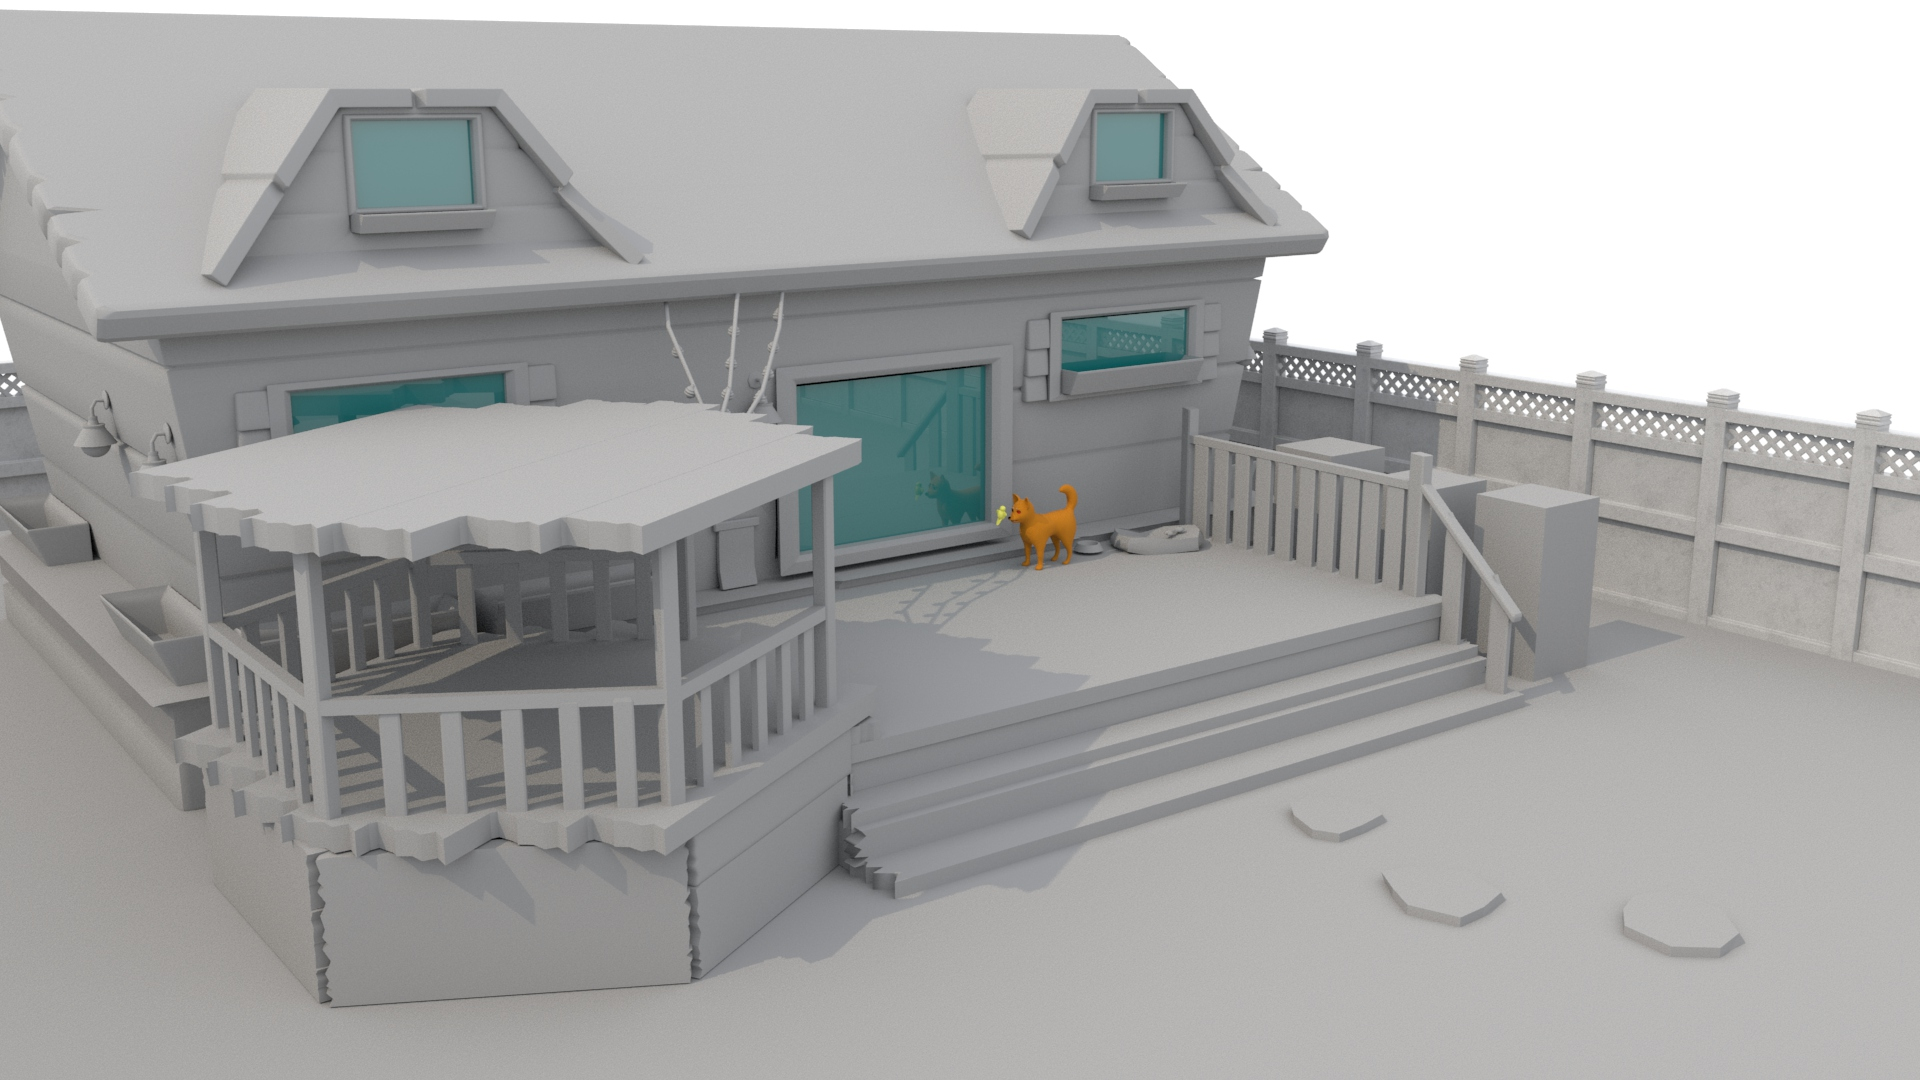 Modeled backyard set, untextured. Roxy and Cheeby in scene for reference.